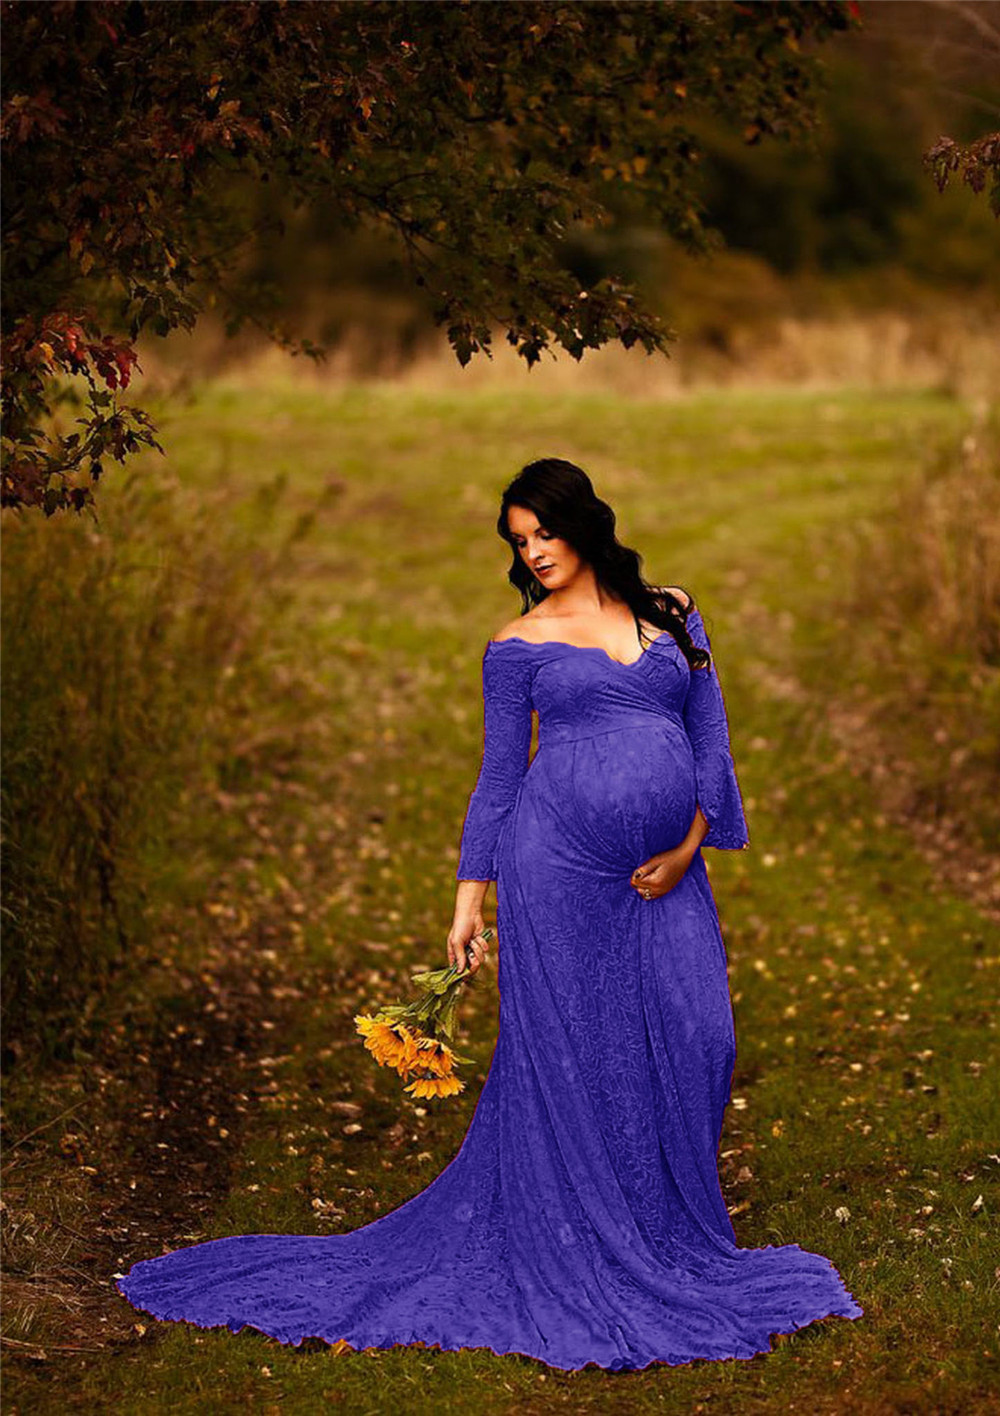 Long Maternity Dresses For Photo Shoot Sexy Lace Fancy Pregnancy Dresses Flare Sleeve Pregnant Women Maxi Gown Photography Props (16)